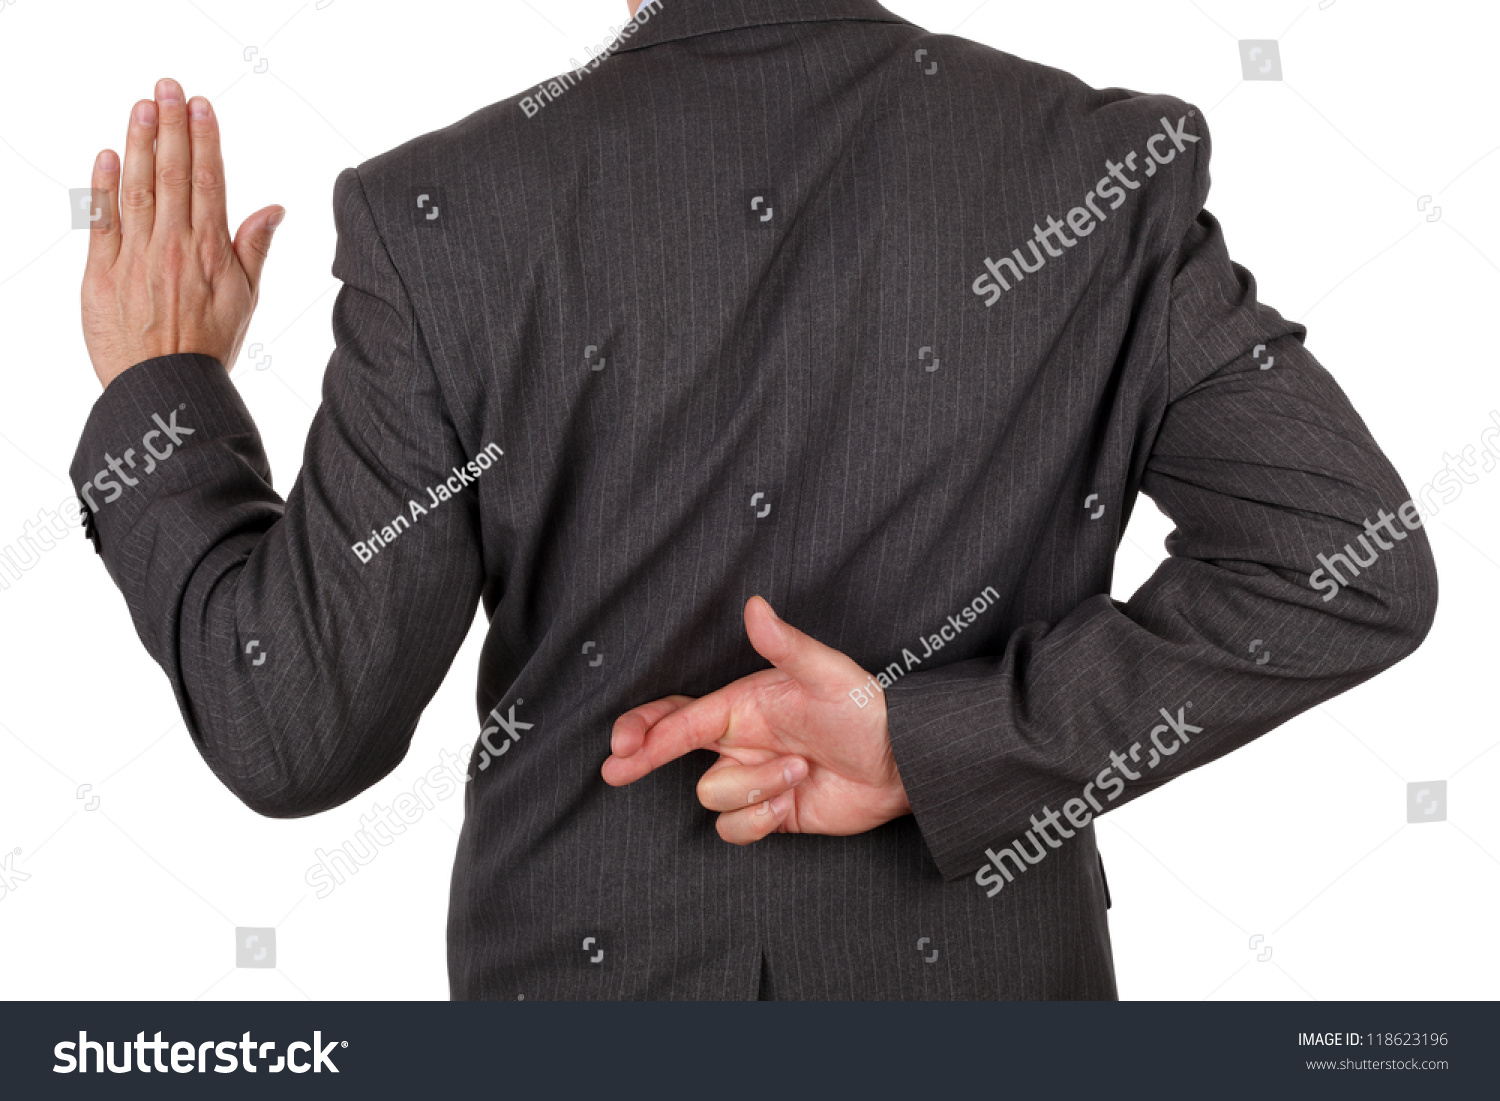 Swearing Oath Fingers Crossed Behind Back Stock Photo Edit Now